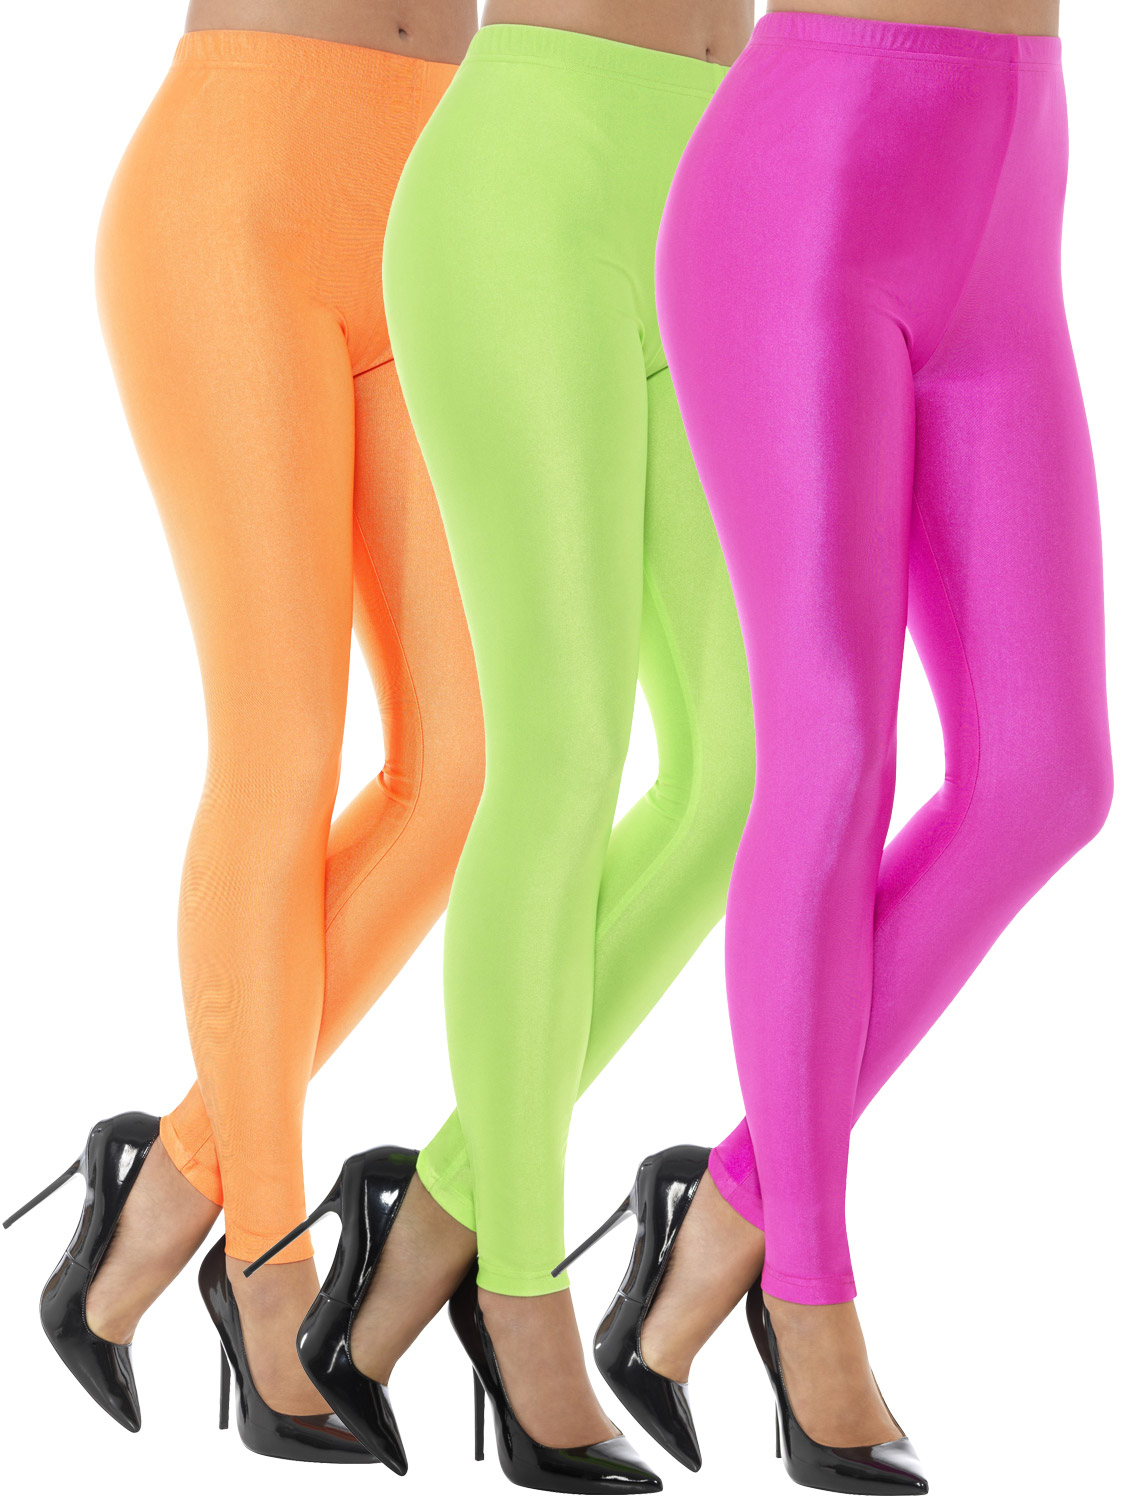 Ladies 80s Disco Spandex Leggings Womens Adults Neon ...